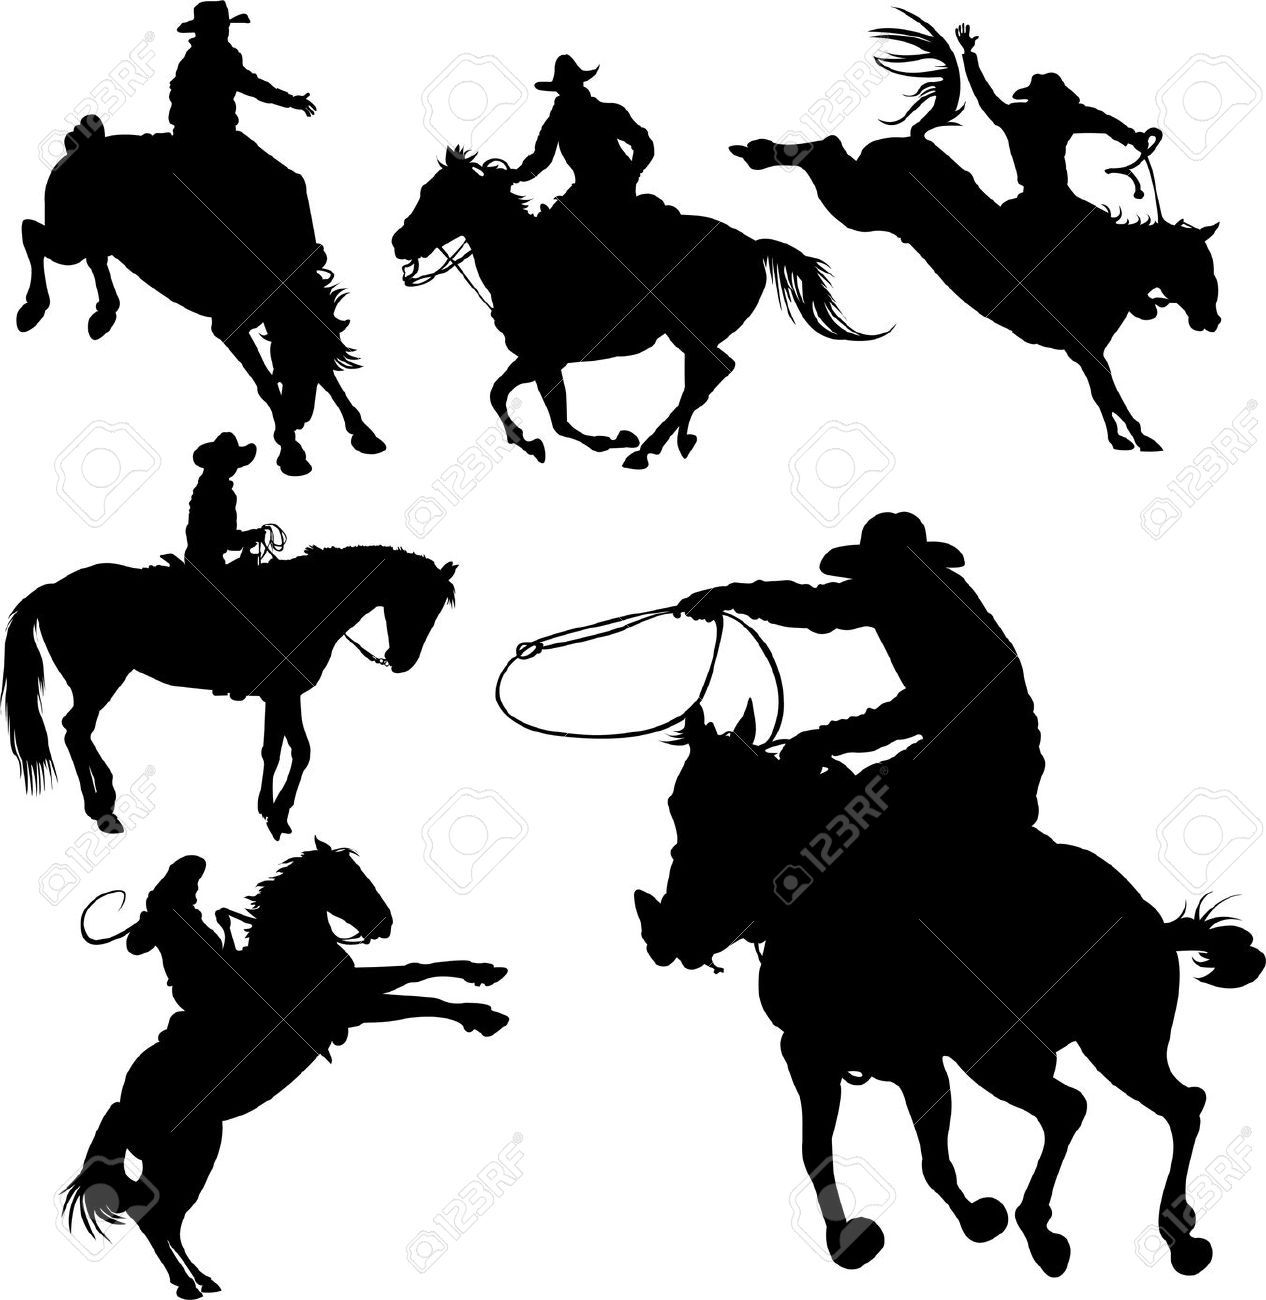 Cowboys On Horses Silhouettes On A White Background Horse Silhouette Cowboy On Horse Western Clip Art